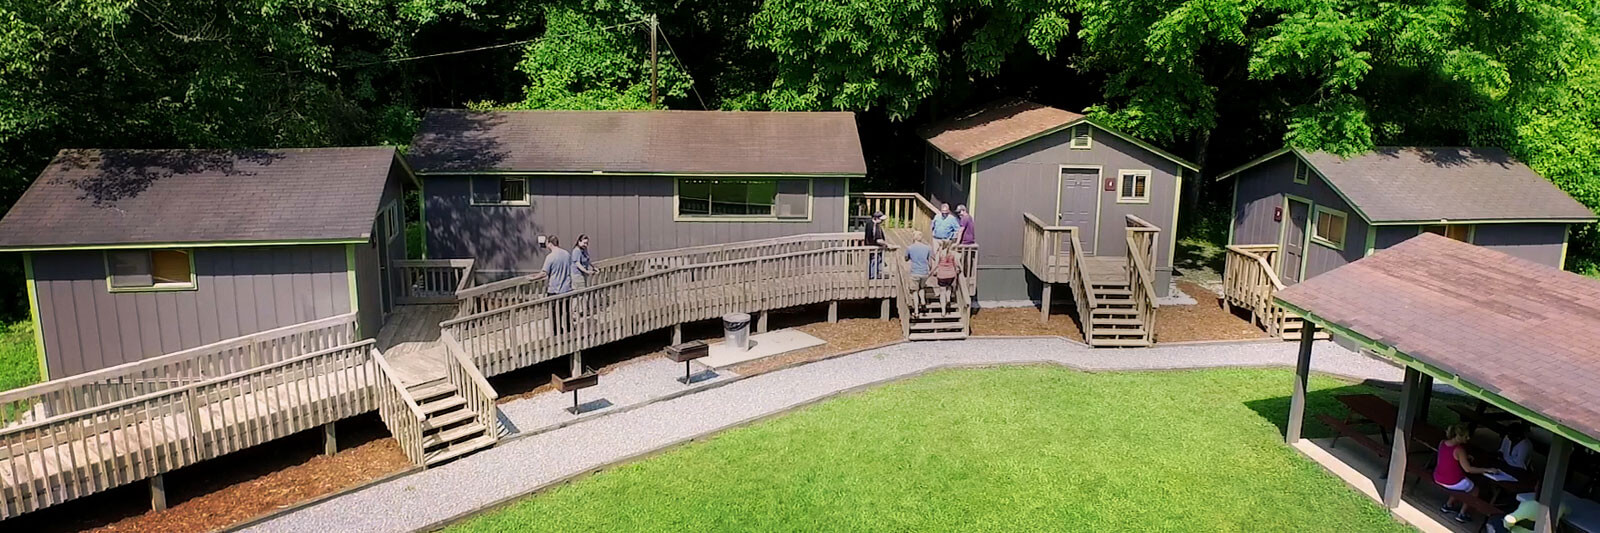 Unicoi Adventure Lodgeadventure Lodges Of Georgia Unicoi